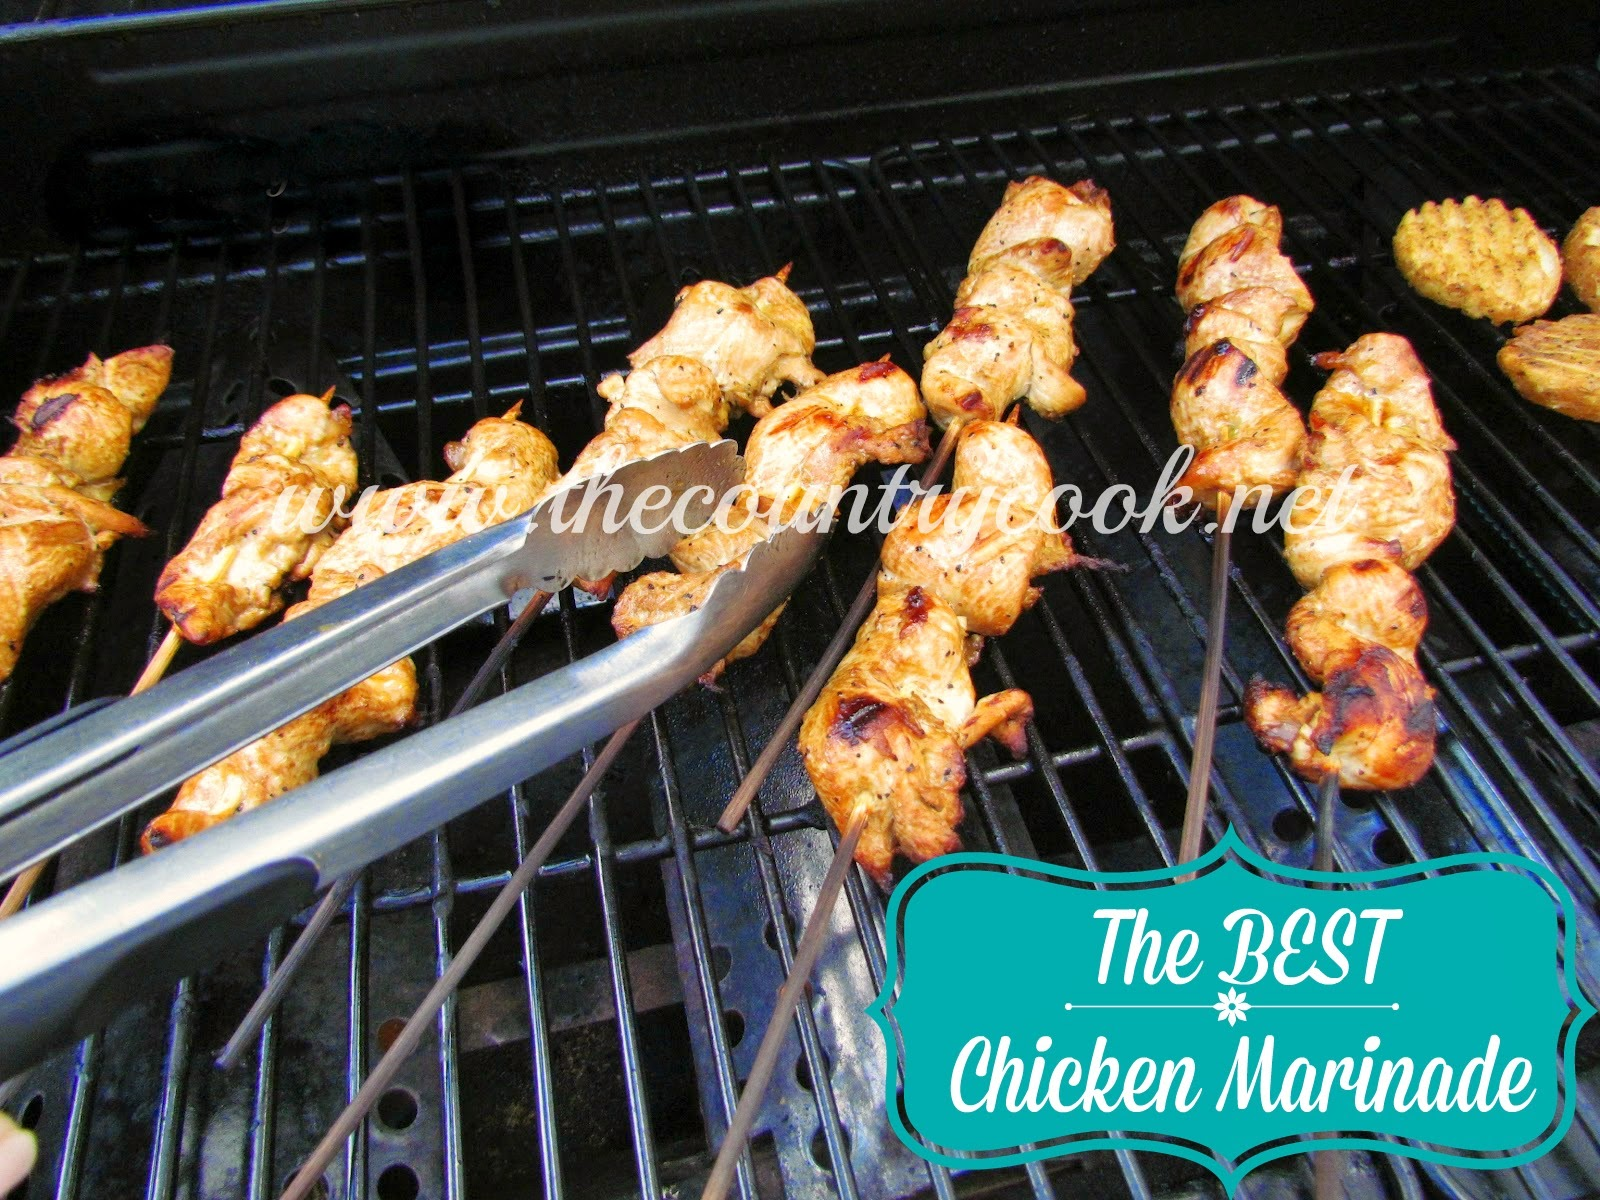 *BEST* Chicken Marinade